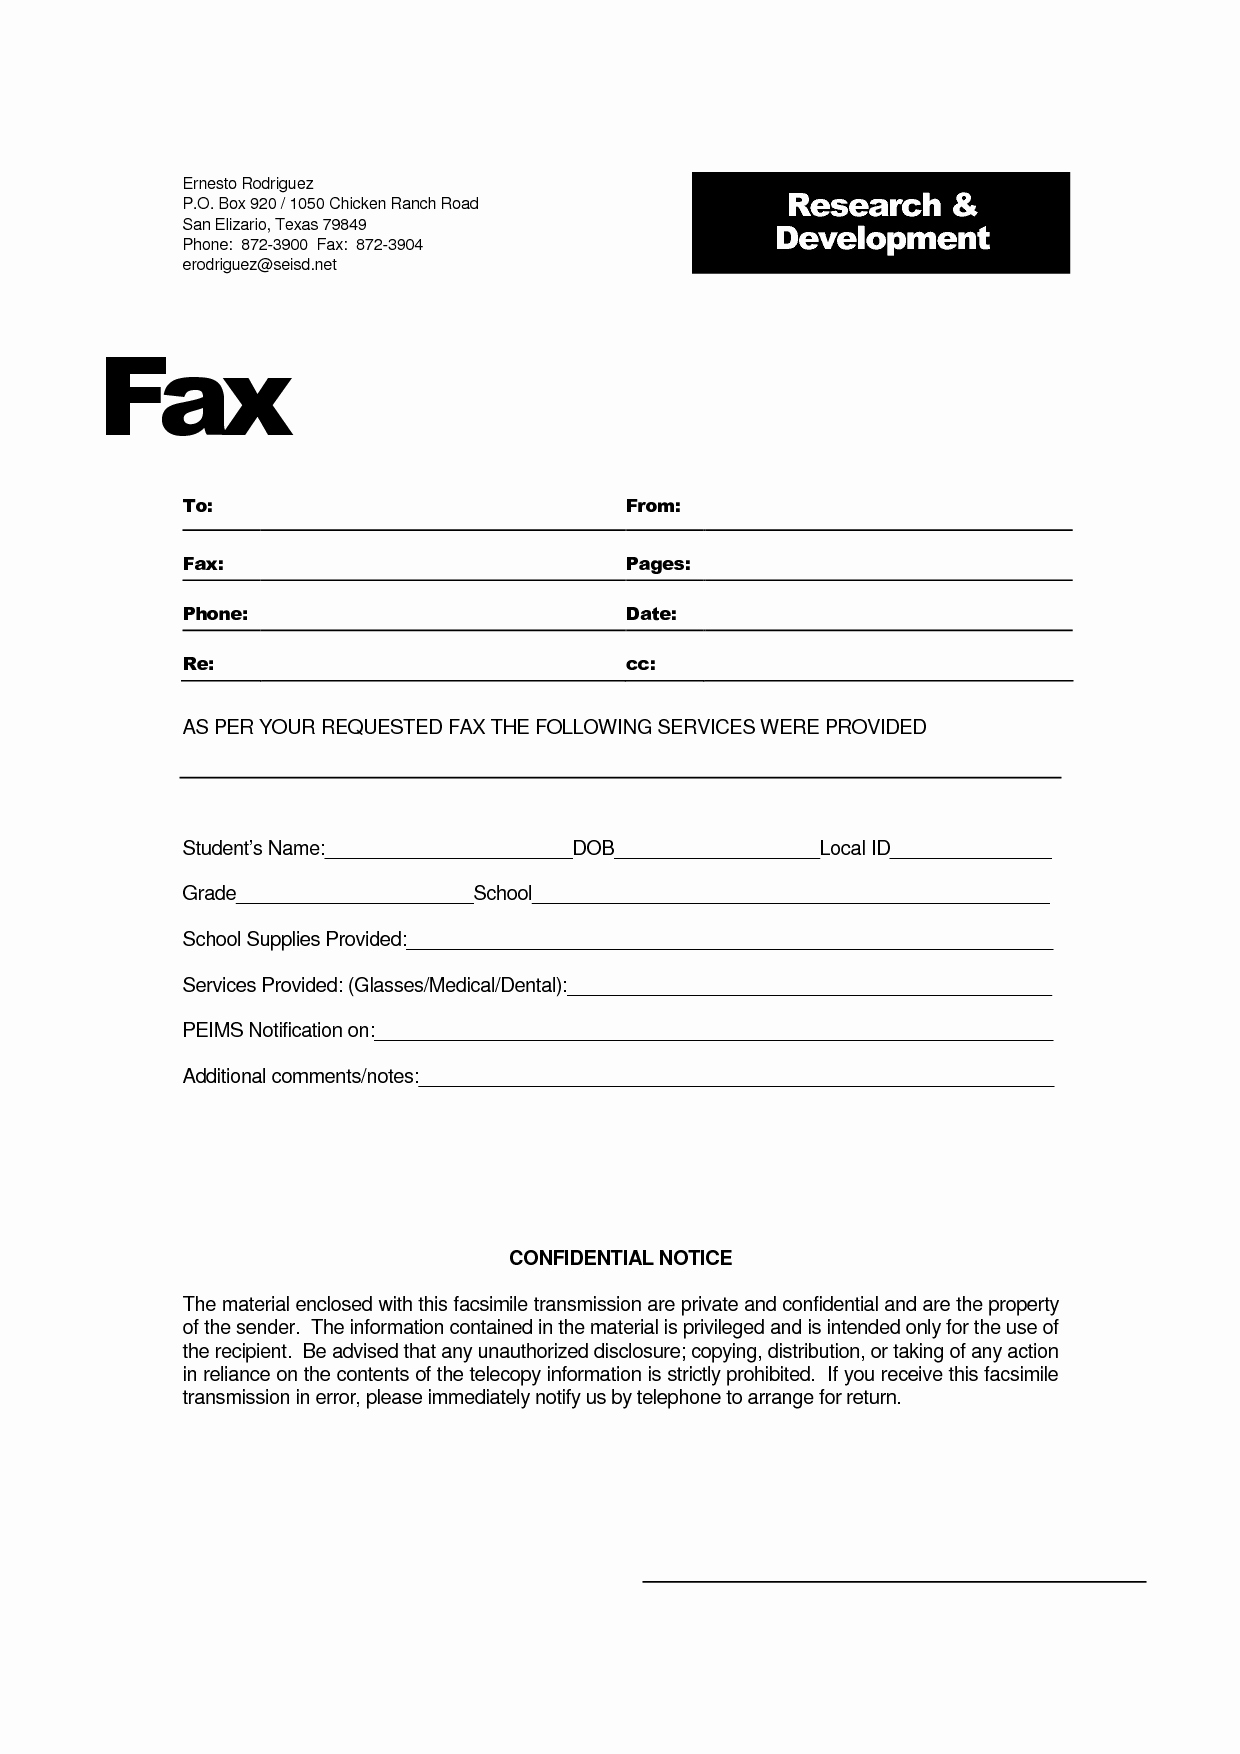 Printable Fax Cover Sheet Confidential Elegant Printable Fax Cover Sheet with Confidentiality Statement